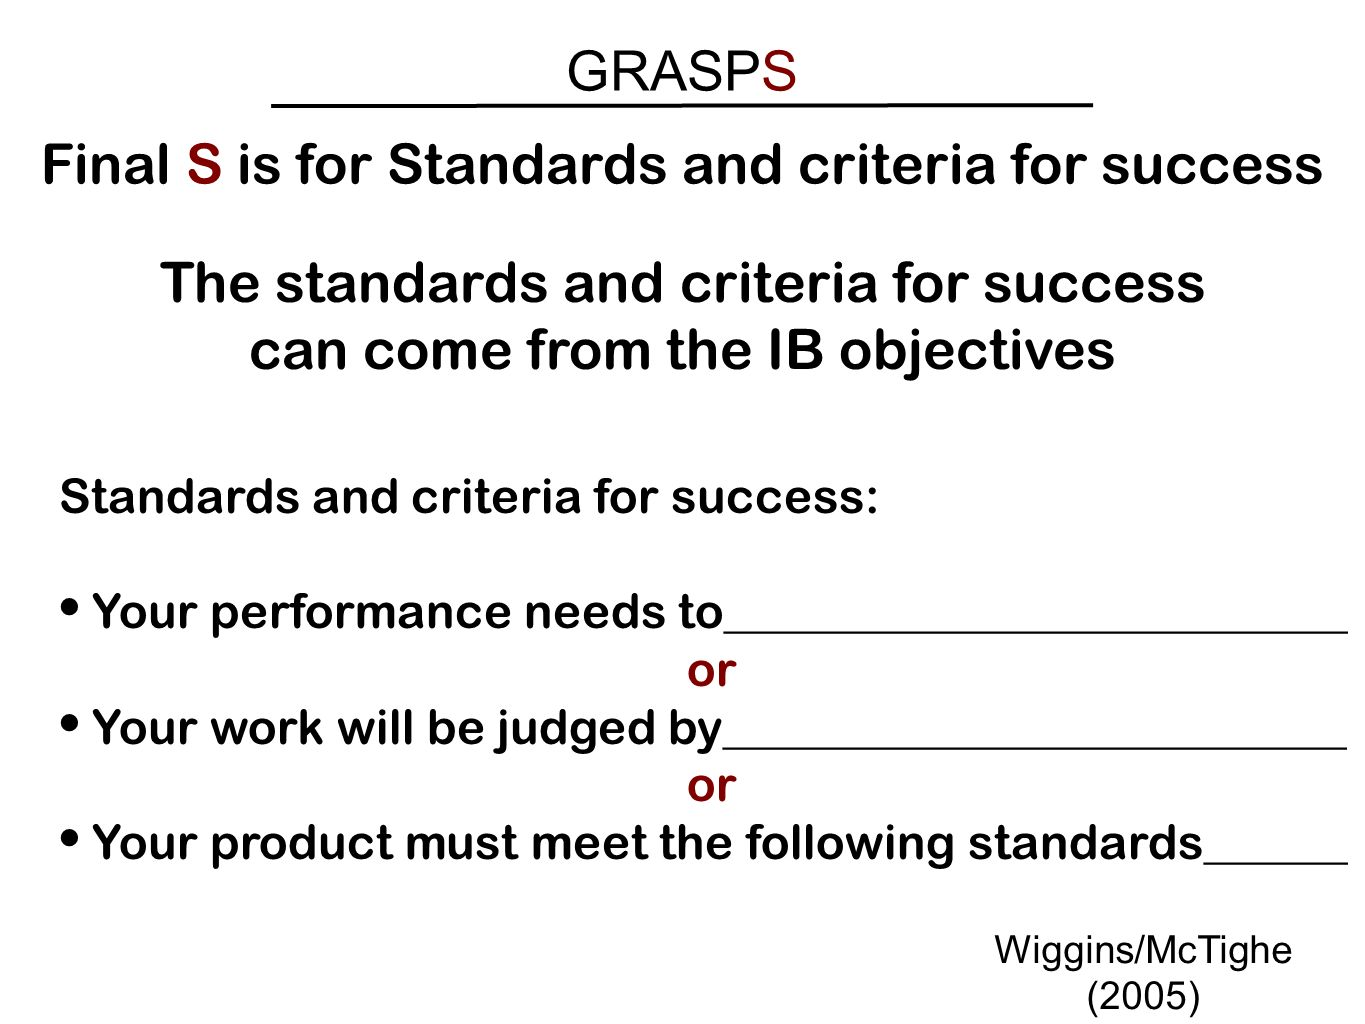 Final S is for Standards and criteria for success